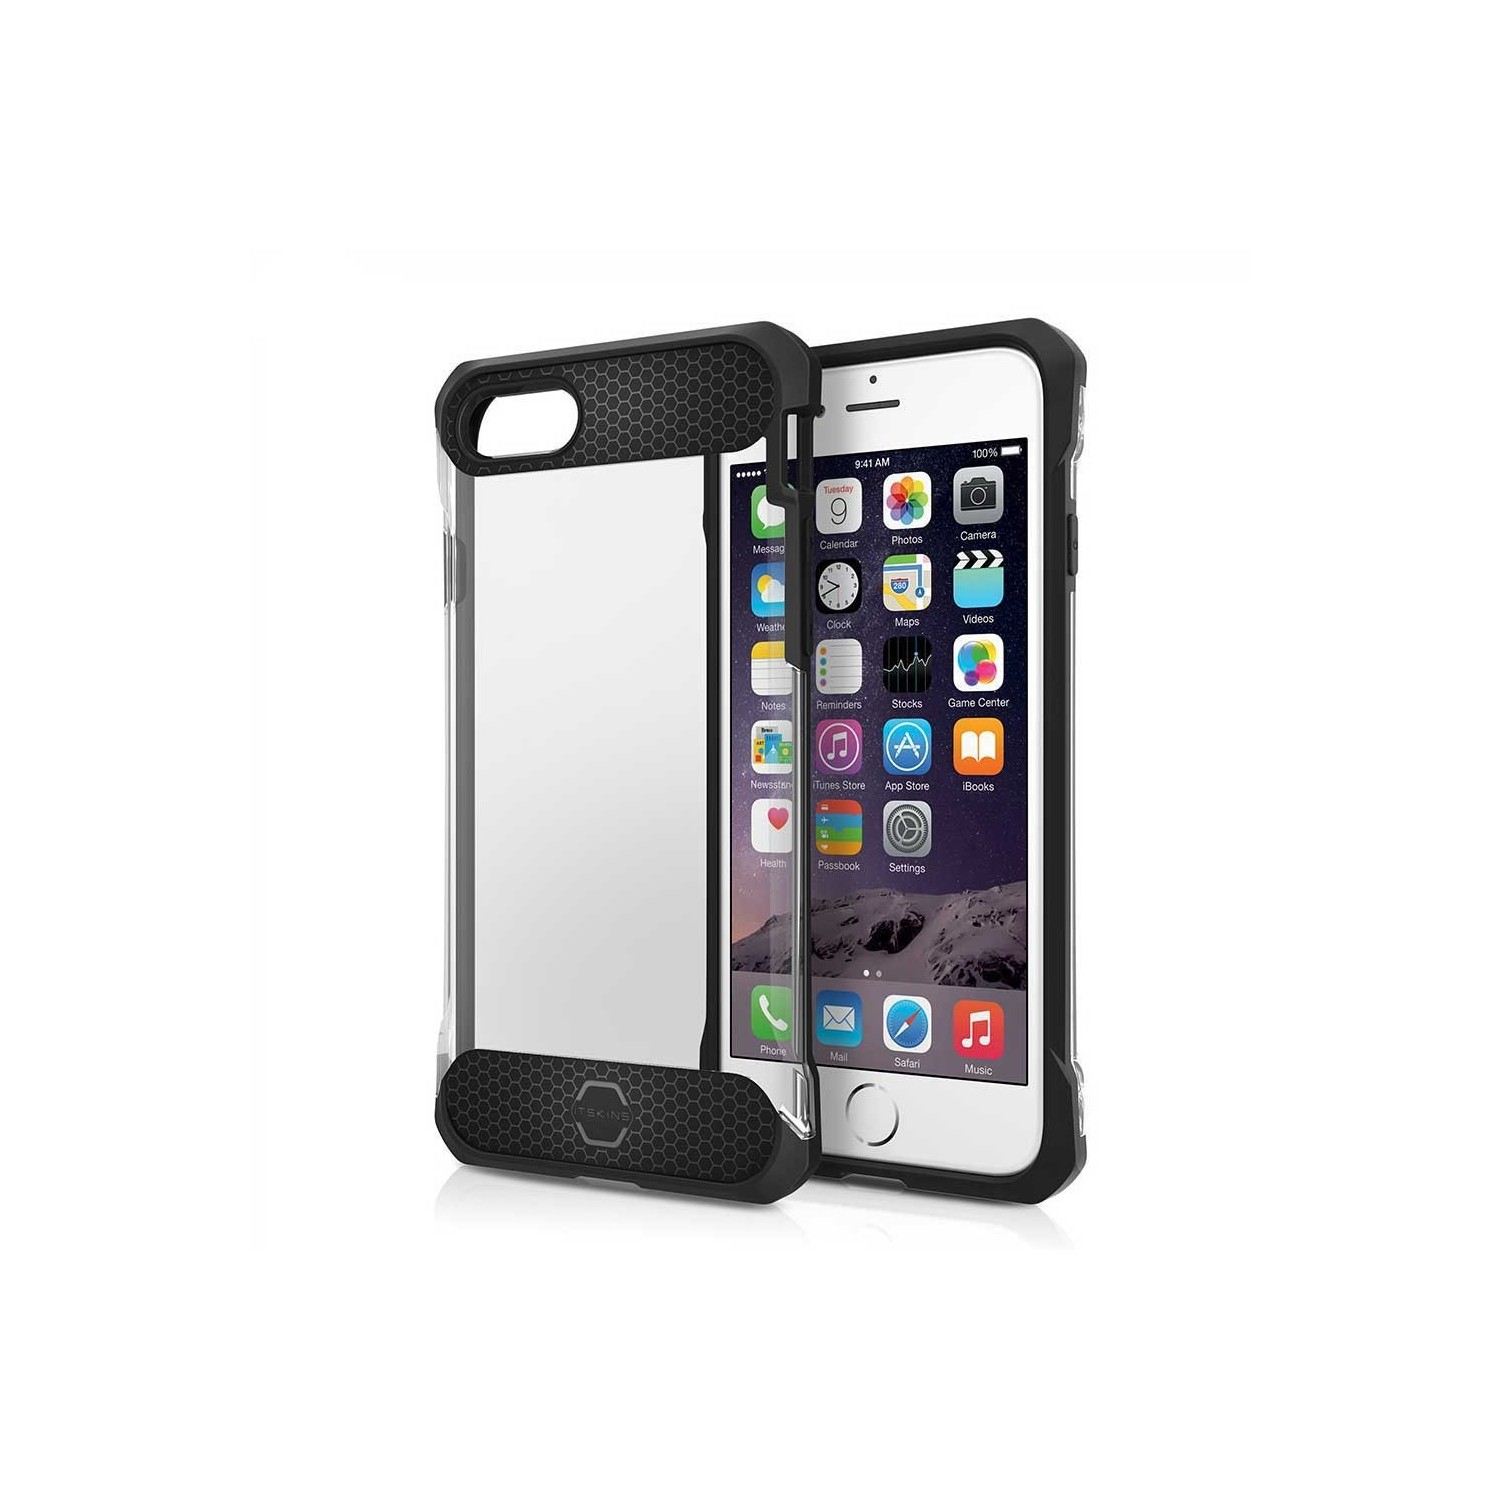 Case - ITSKINS Spina case for iPhone 8 / 7 - Clear